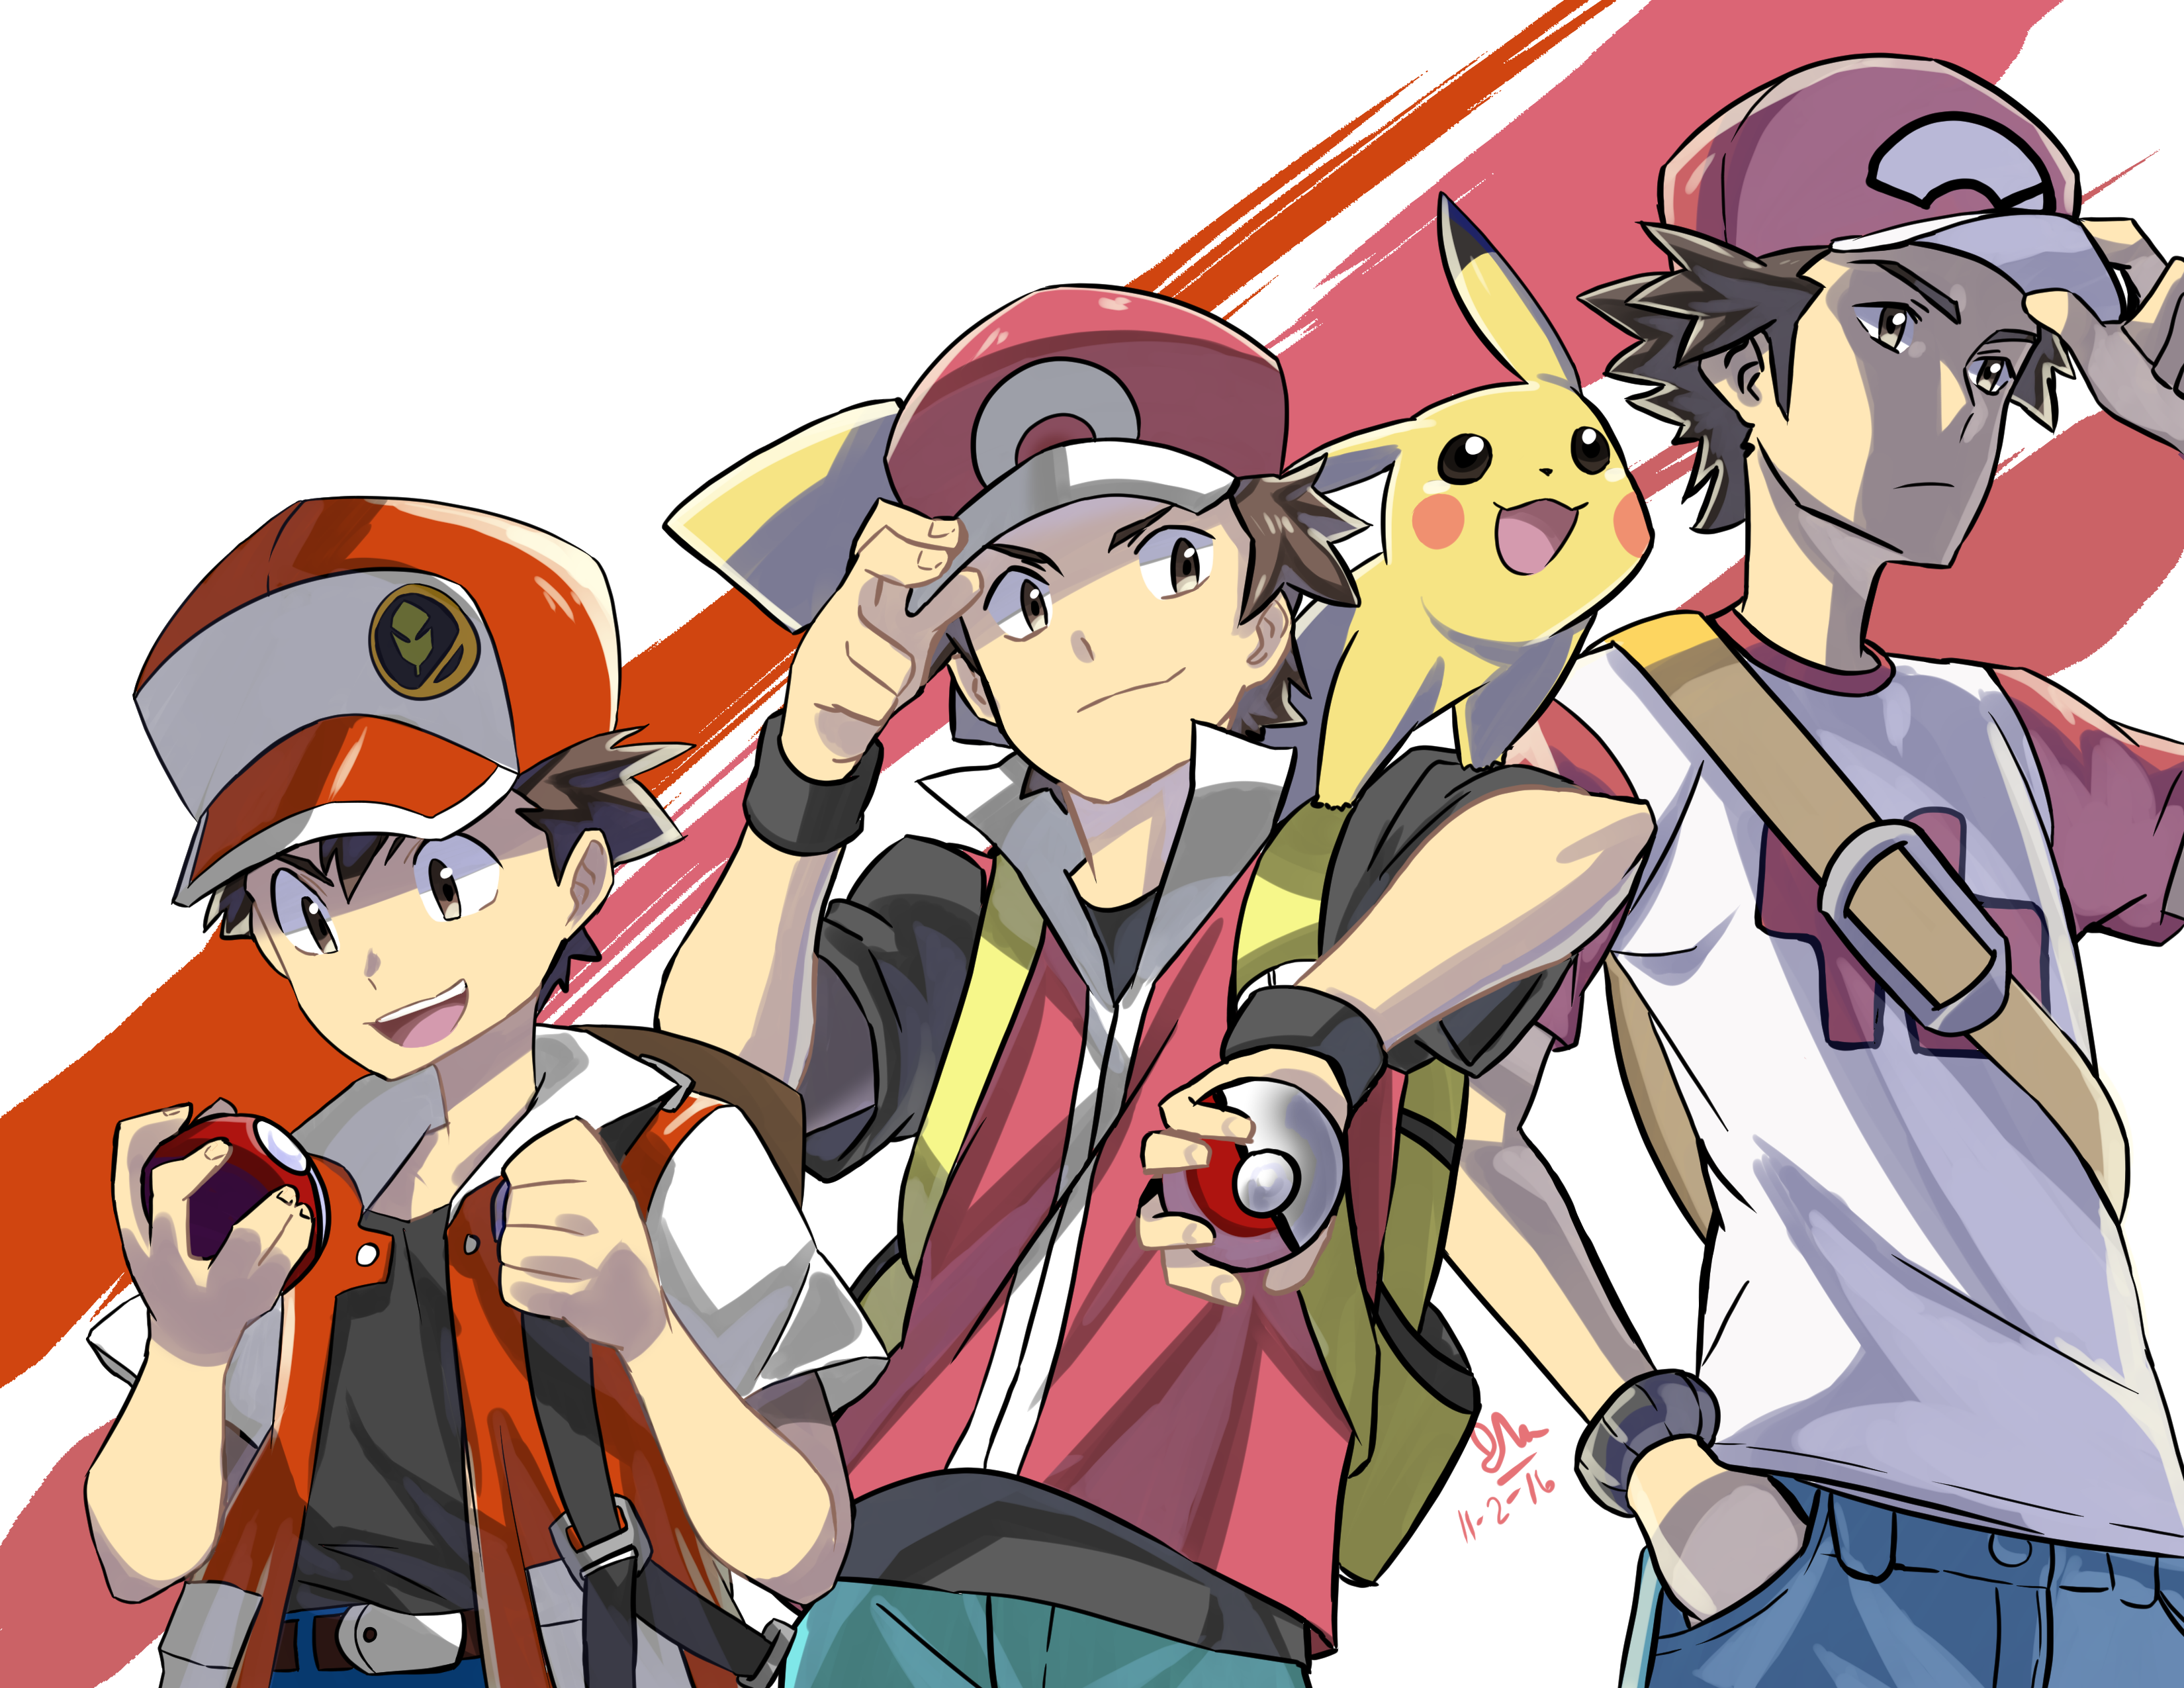 pikachu and red (pokemon (game) and etc) drawn by ishmaiah dado